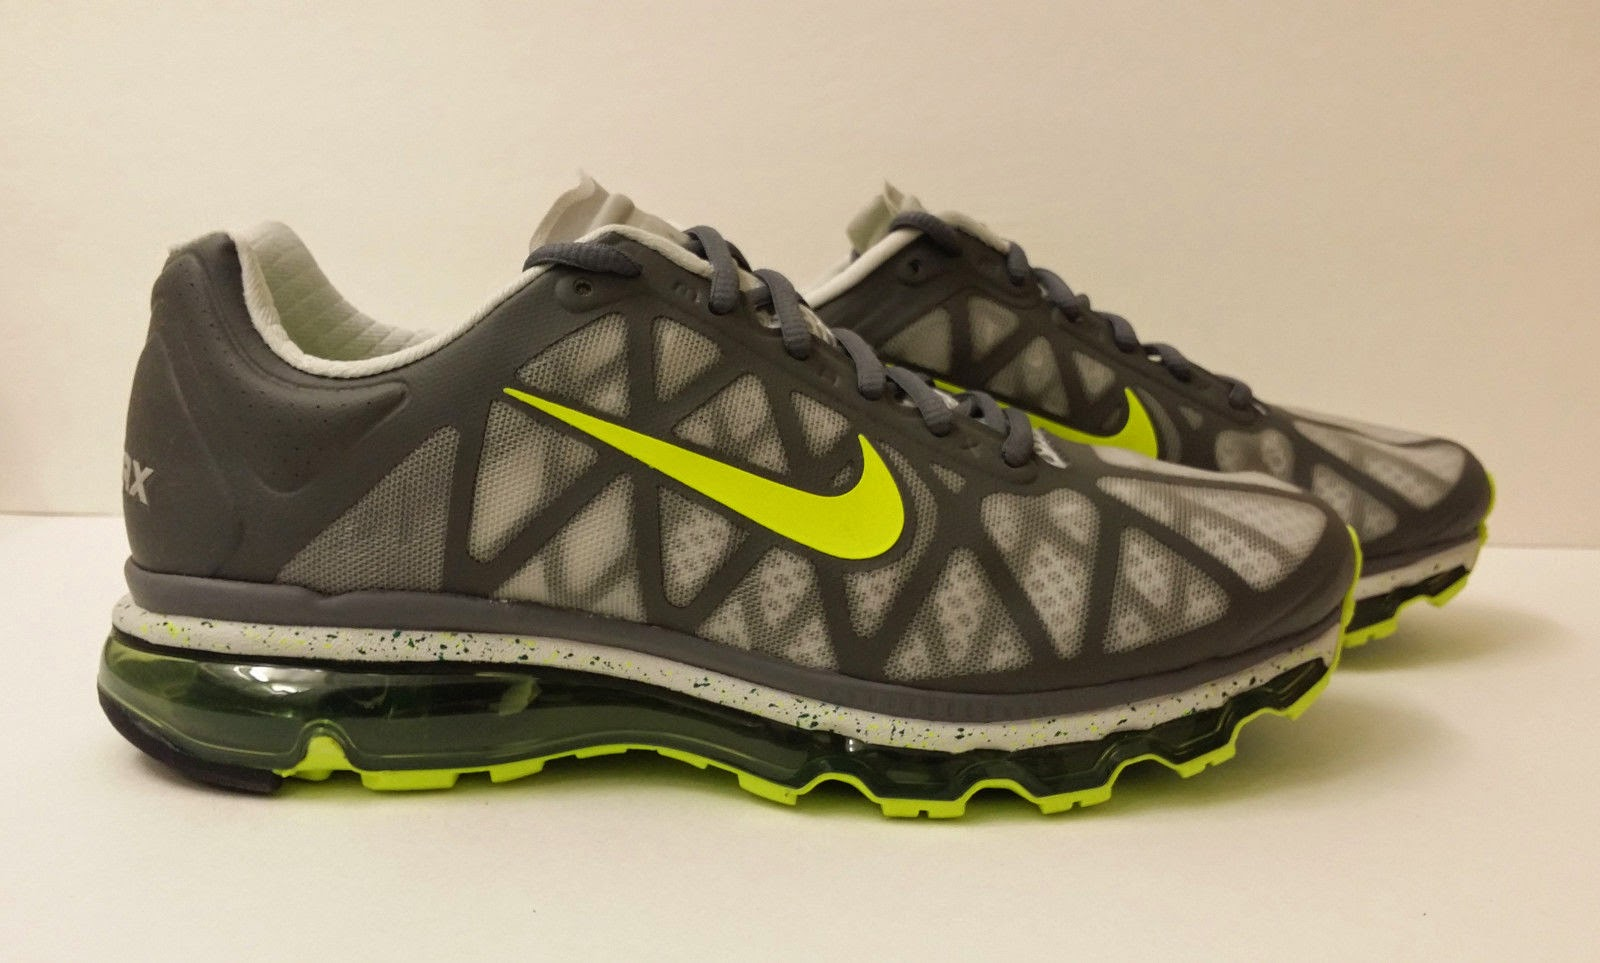 Nike Air Max+ 2011 Dark Grey Volt Green Shoes 429889-030 Men's US 8 available